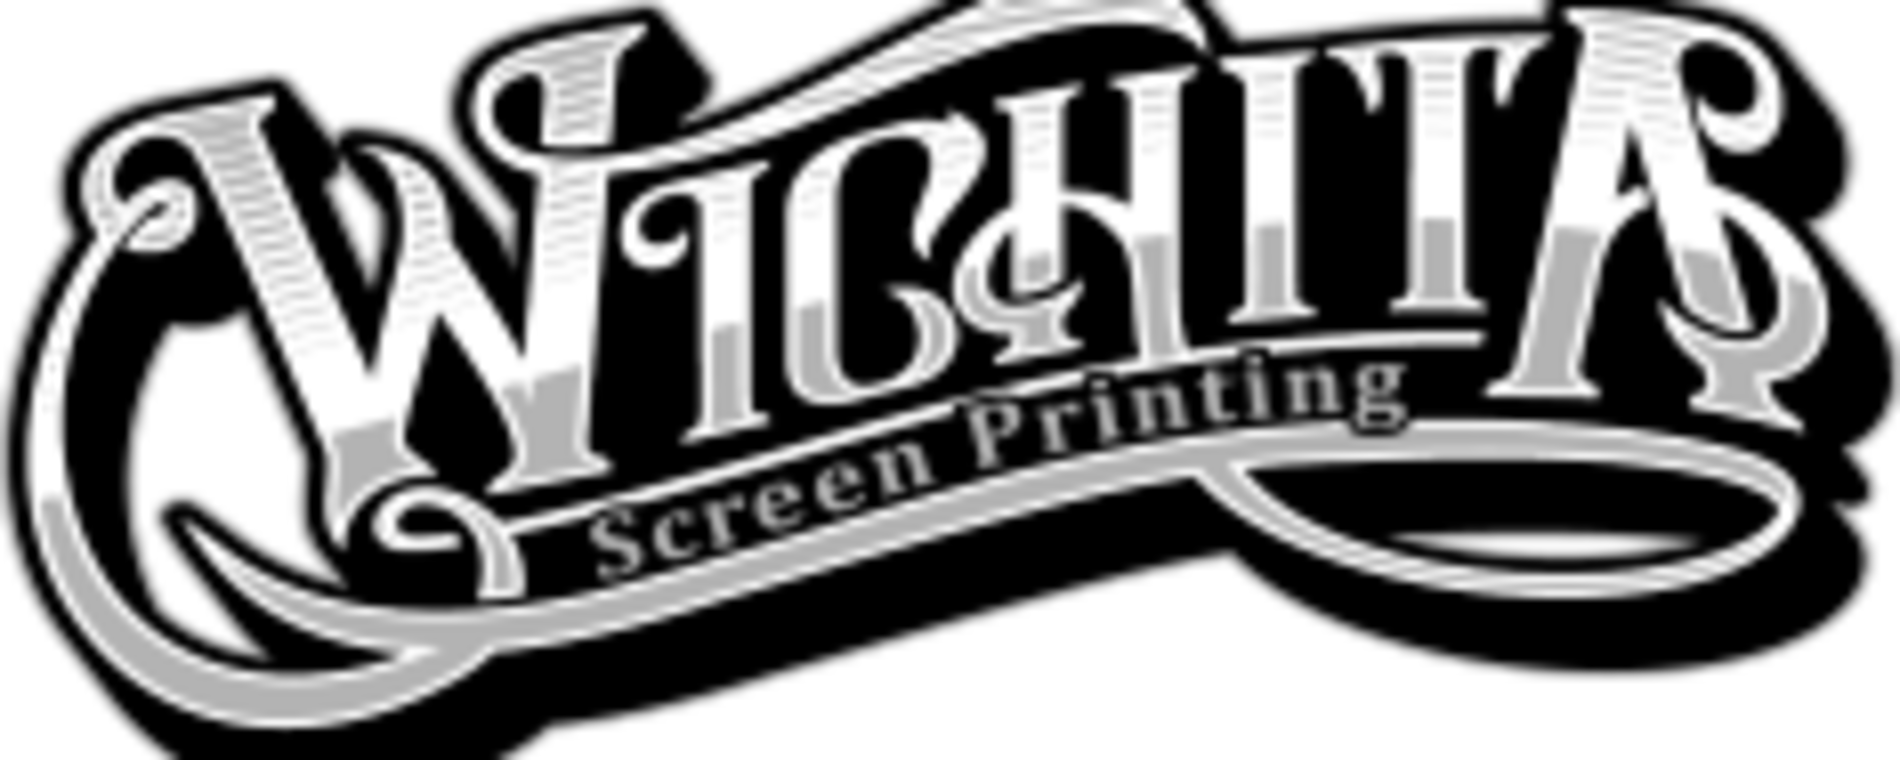 Wichita Screen Printing logo Visit Wichita